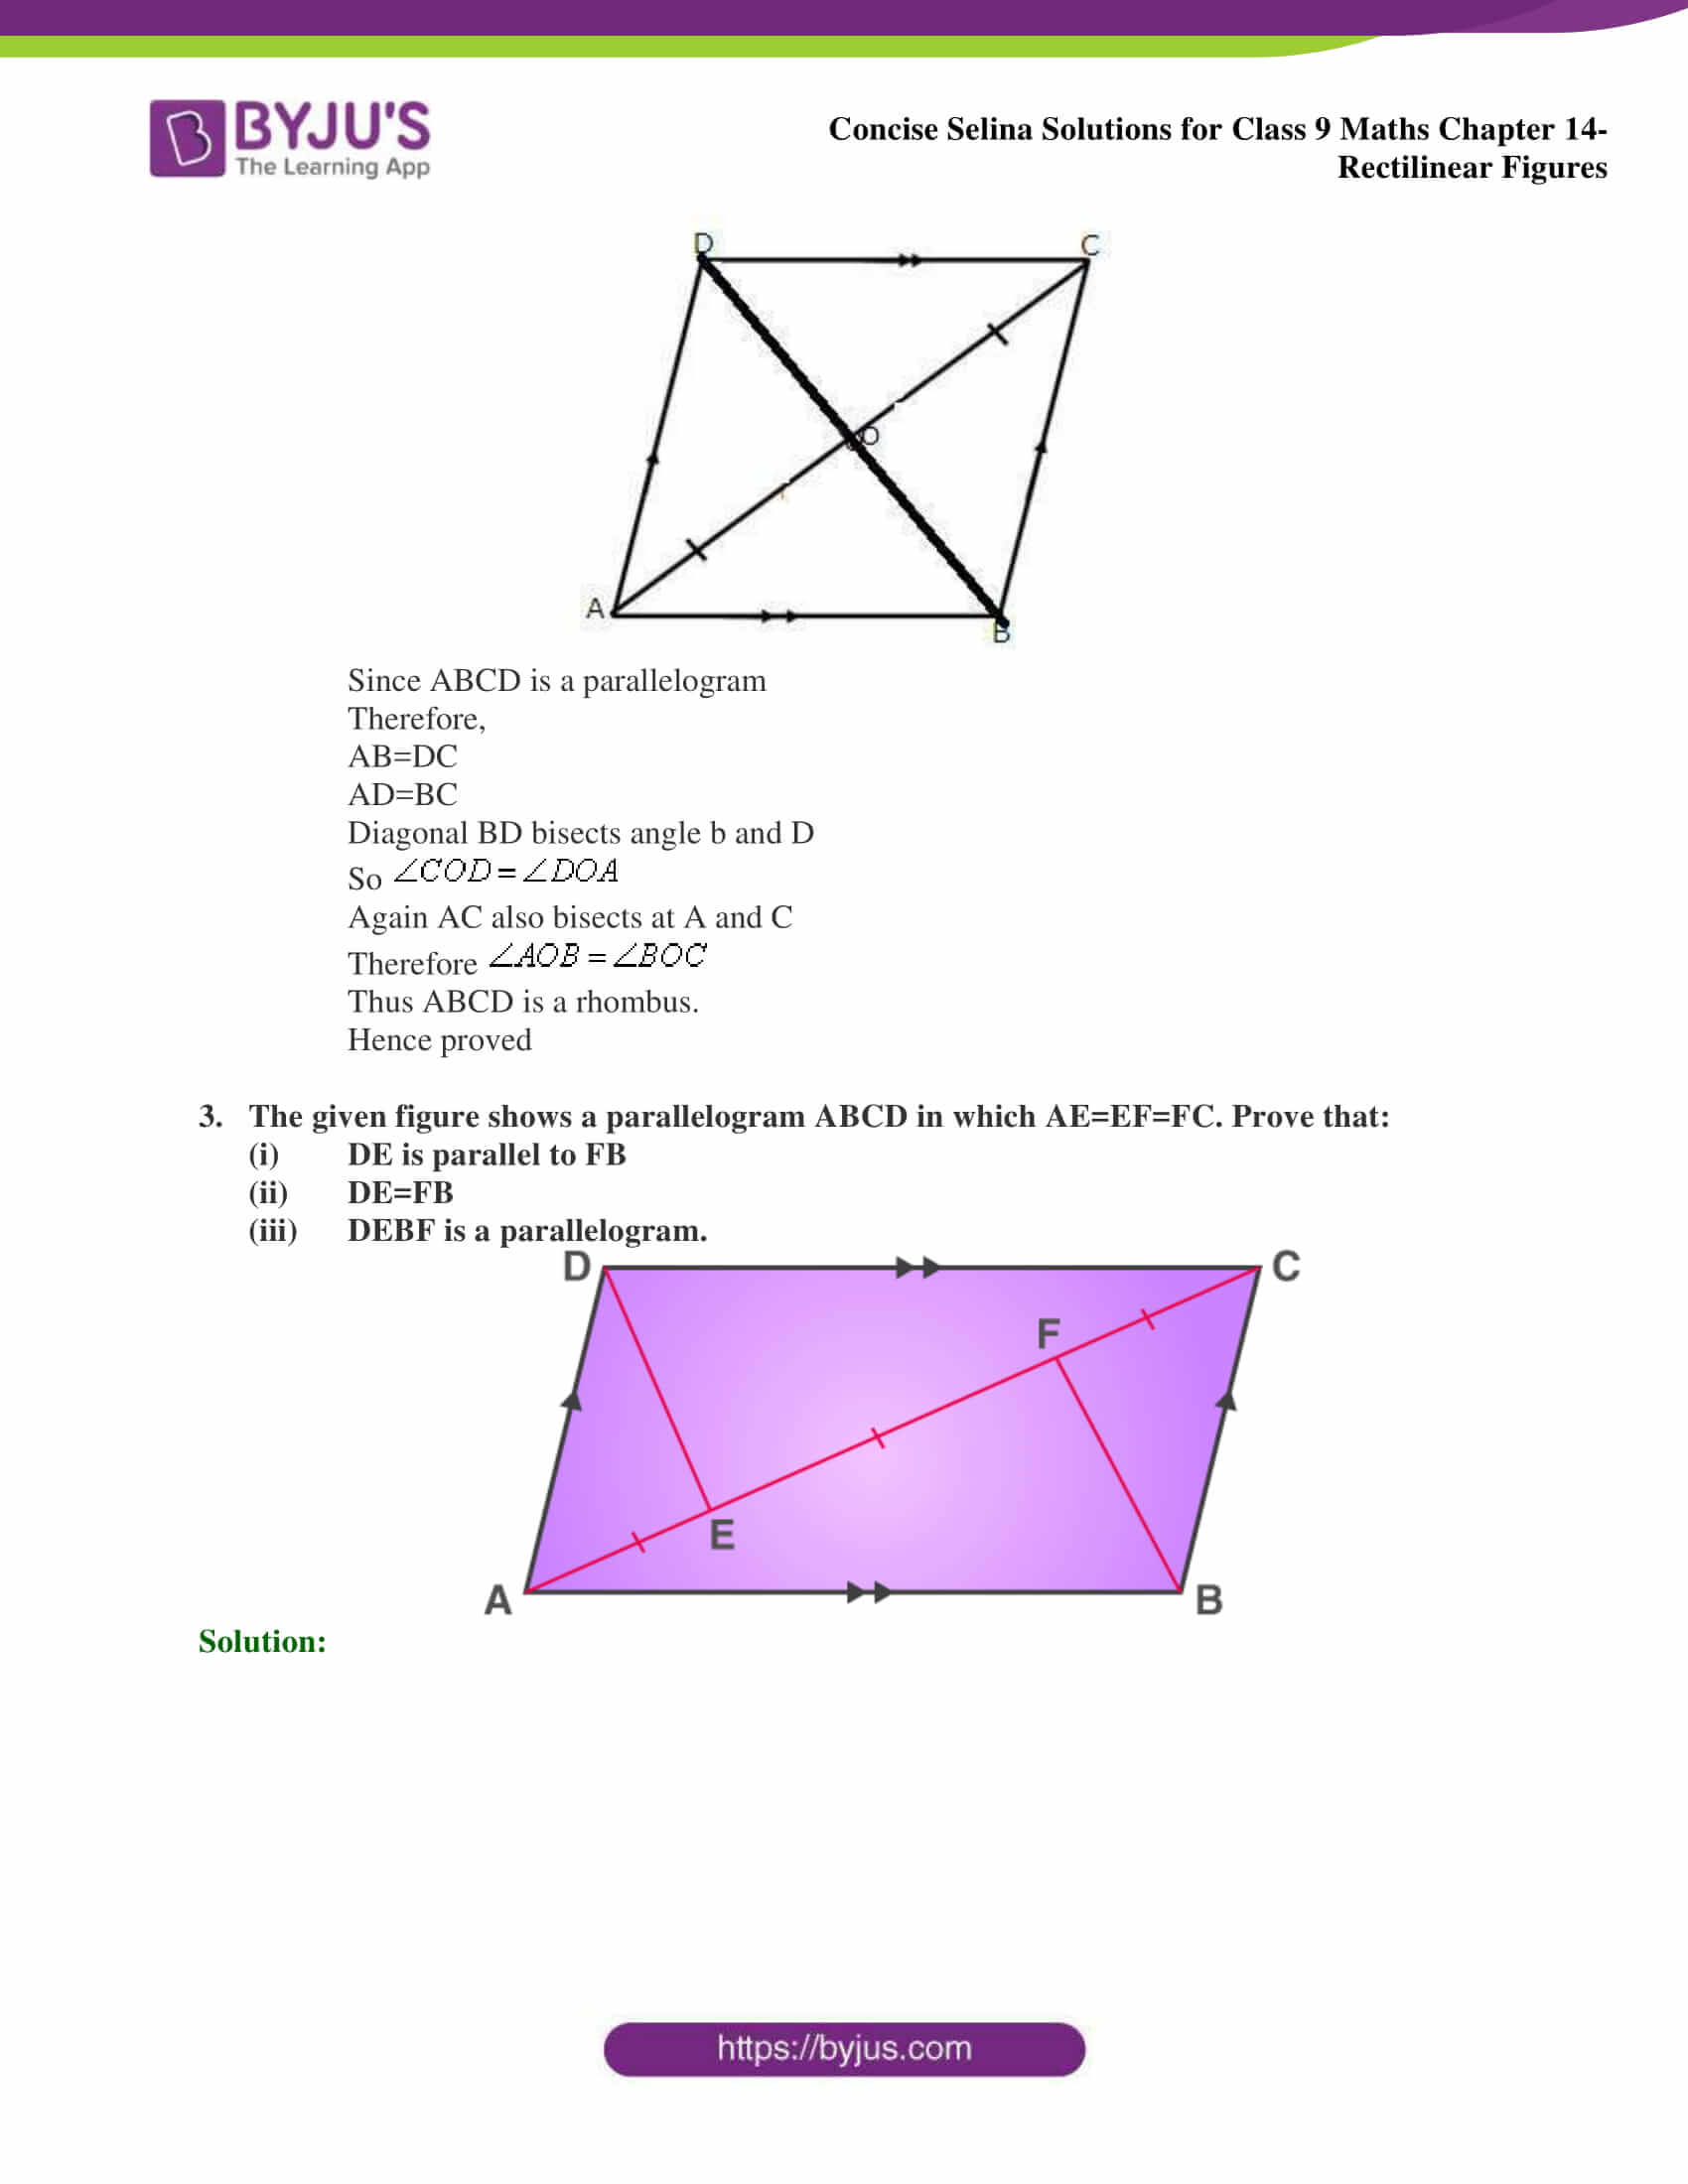 selina Solutions for Class 9 Maths Chapter 14 part 18